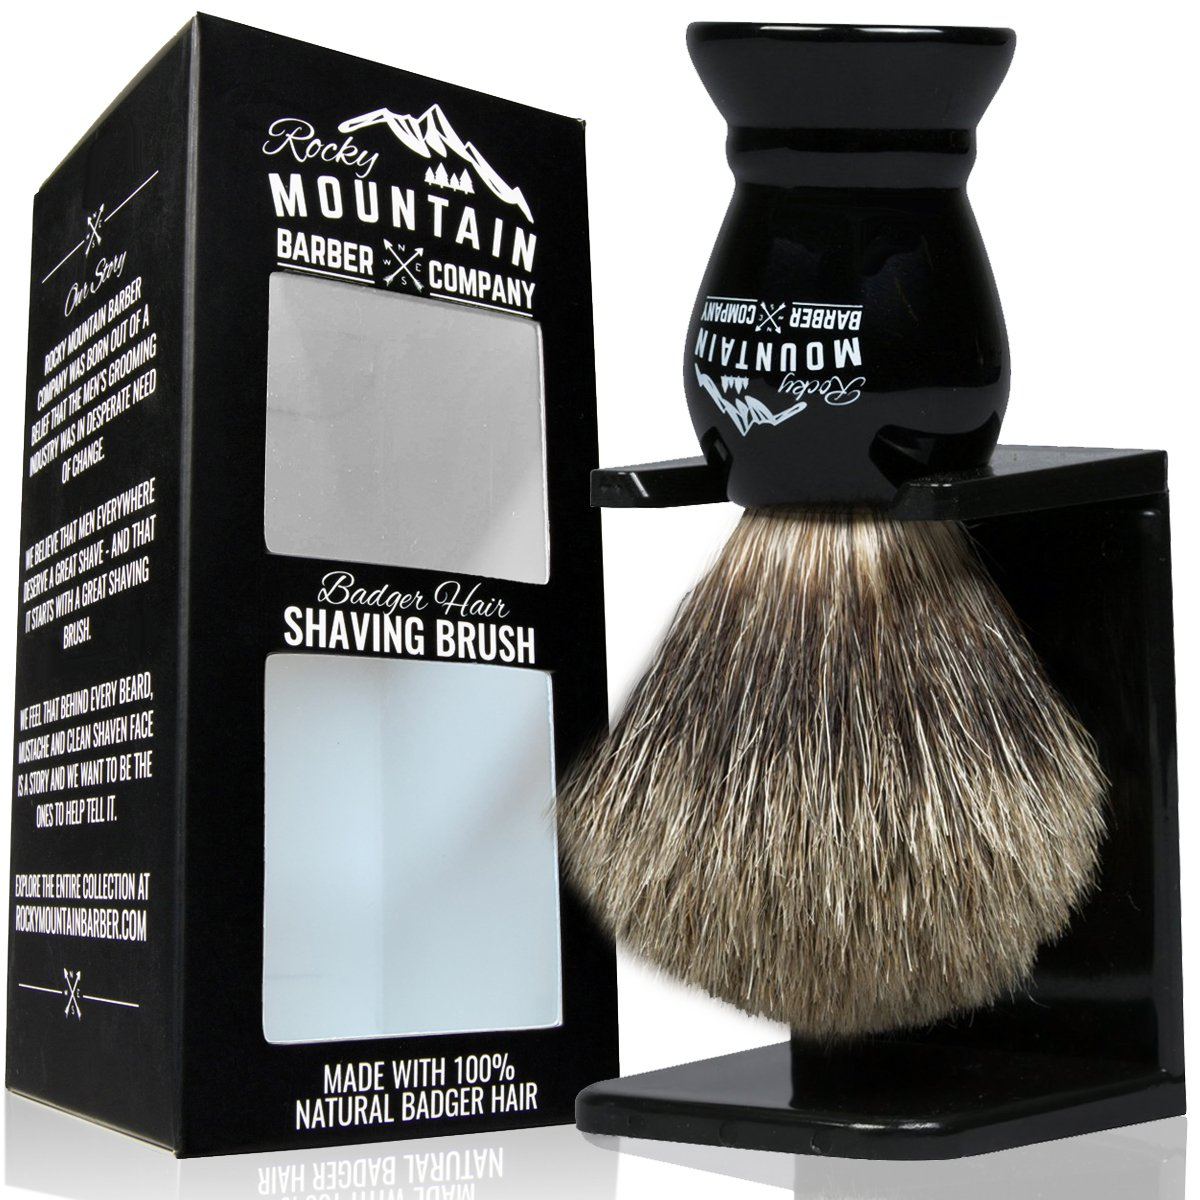 Shaving Brush with Stand - Rocky Mountain Barber Pure 100% Best Badger Hair Barber Grade with Black Heavy Duty All-Resin Handle and Oversized Bristle Head For Better Shaving Cream Lather Rocky Mountain Barber Company